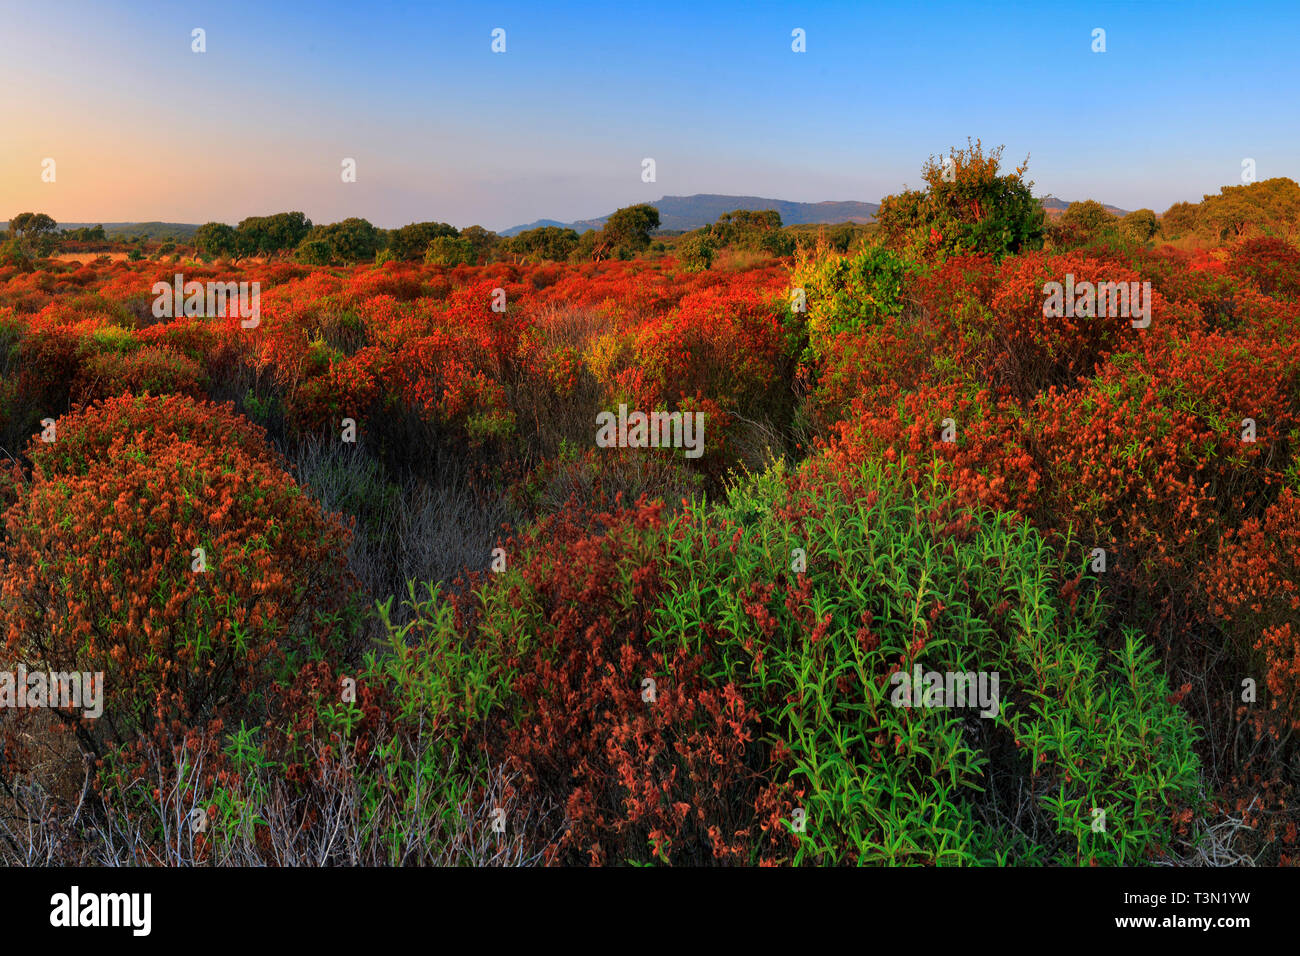 An amazing display of aromatic herbs in the countryside nearby the archeological site of Nuraghe Appiu, Villanova Monteleone, Sardinia, Italy - Stock Image